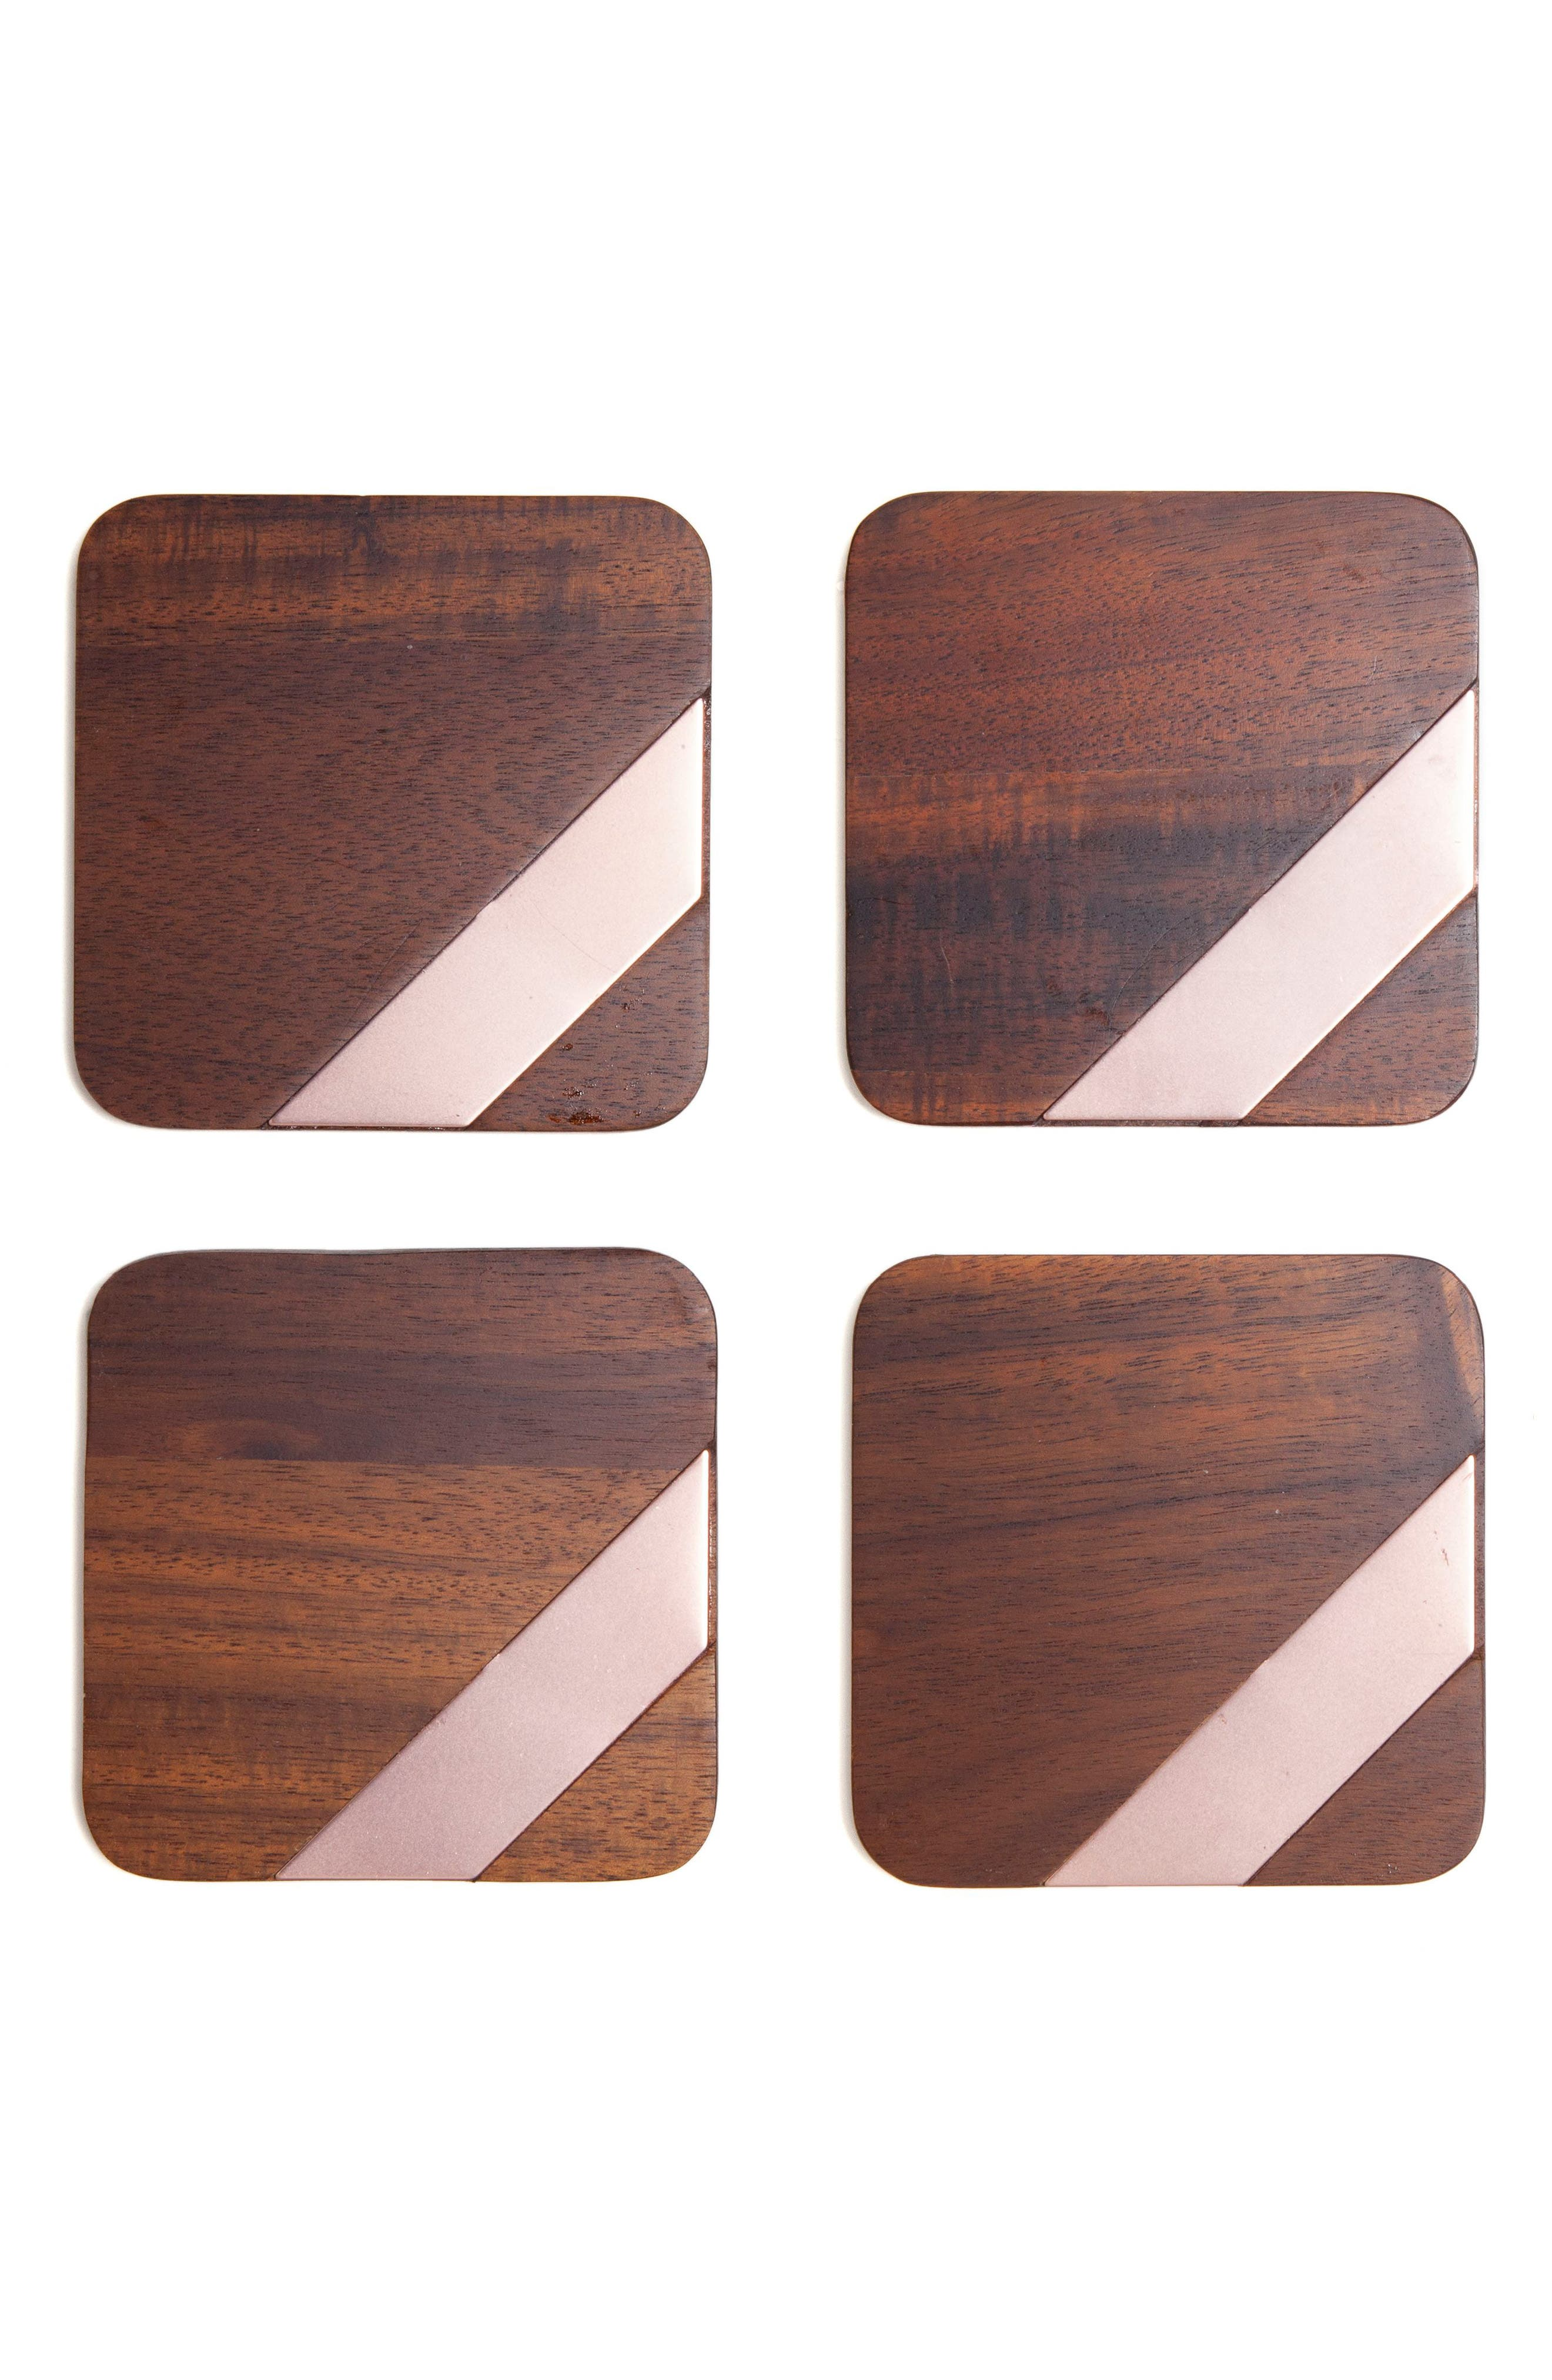 Alternate Image 1 Selected - Core Home Set of 4 Wood & Copper Coasters